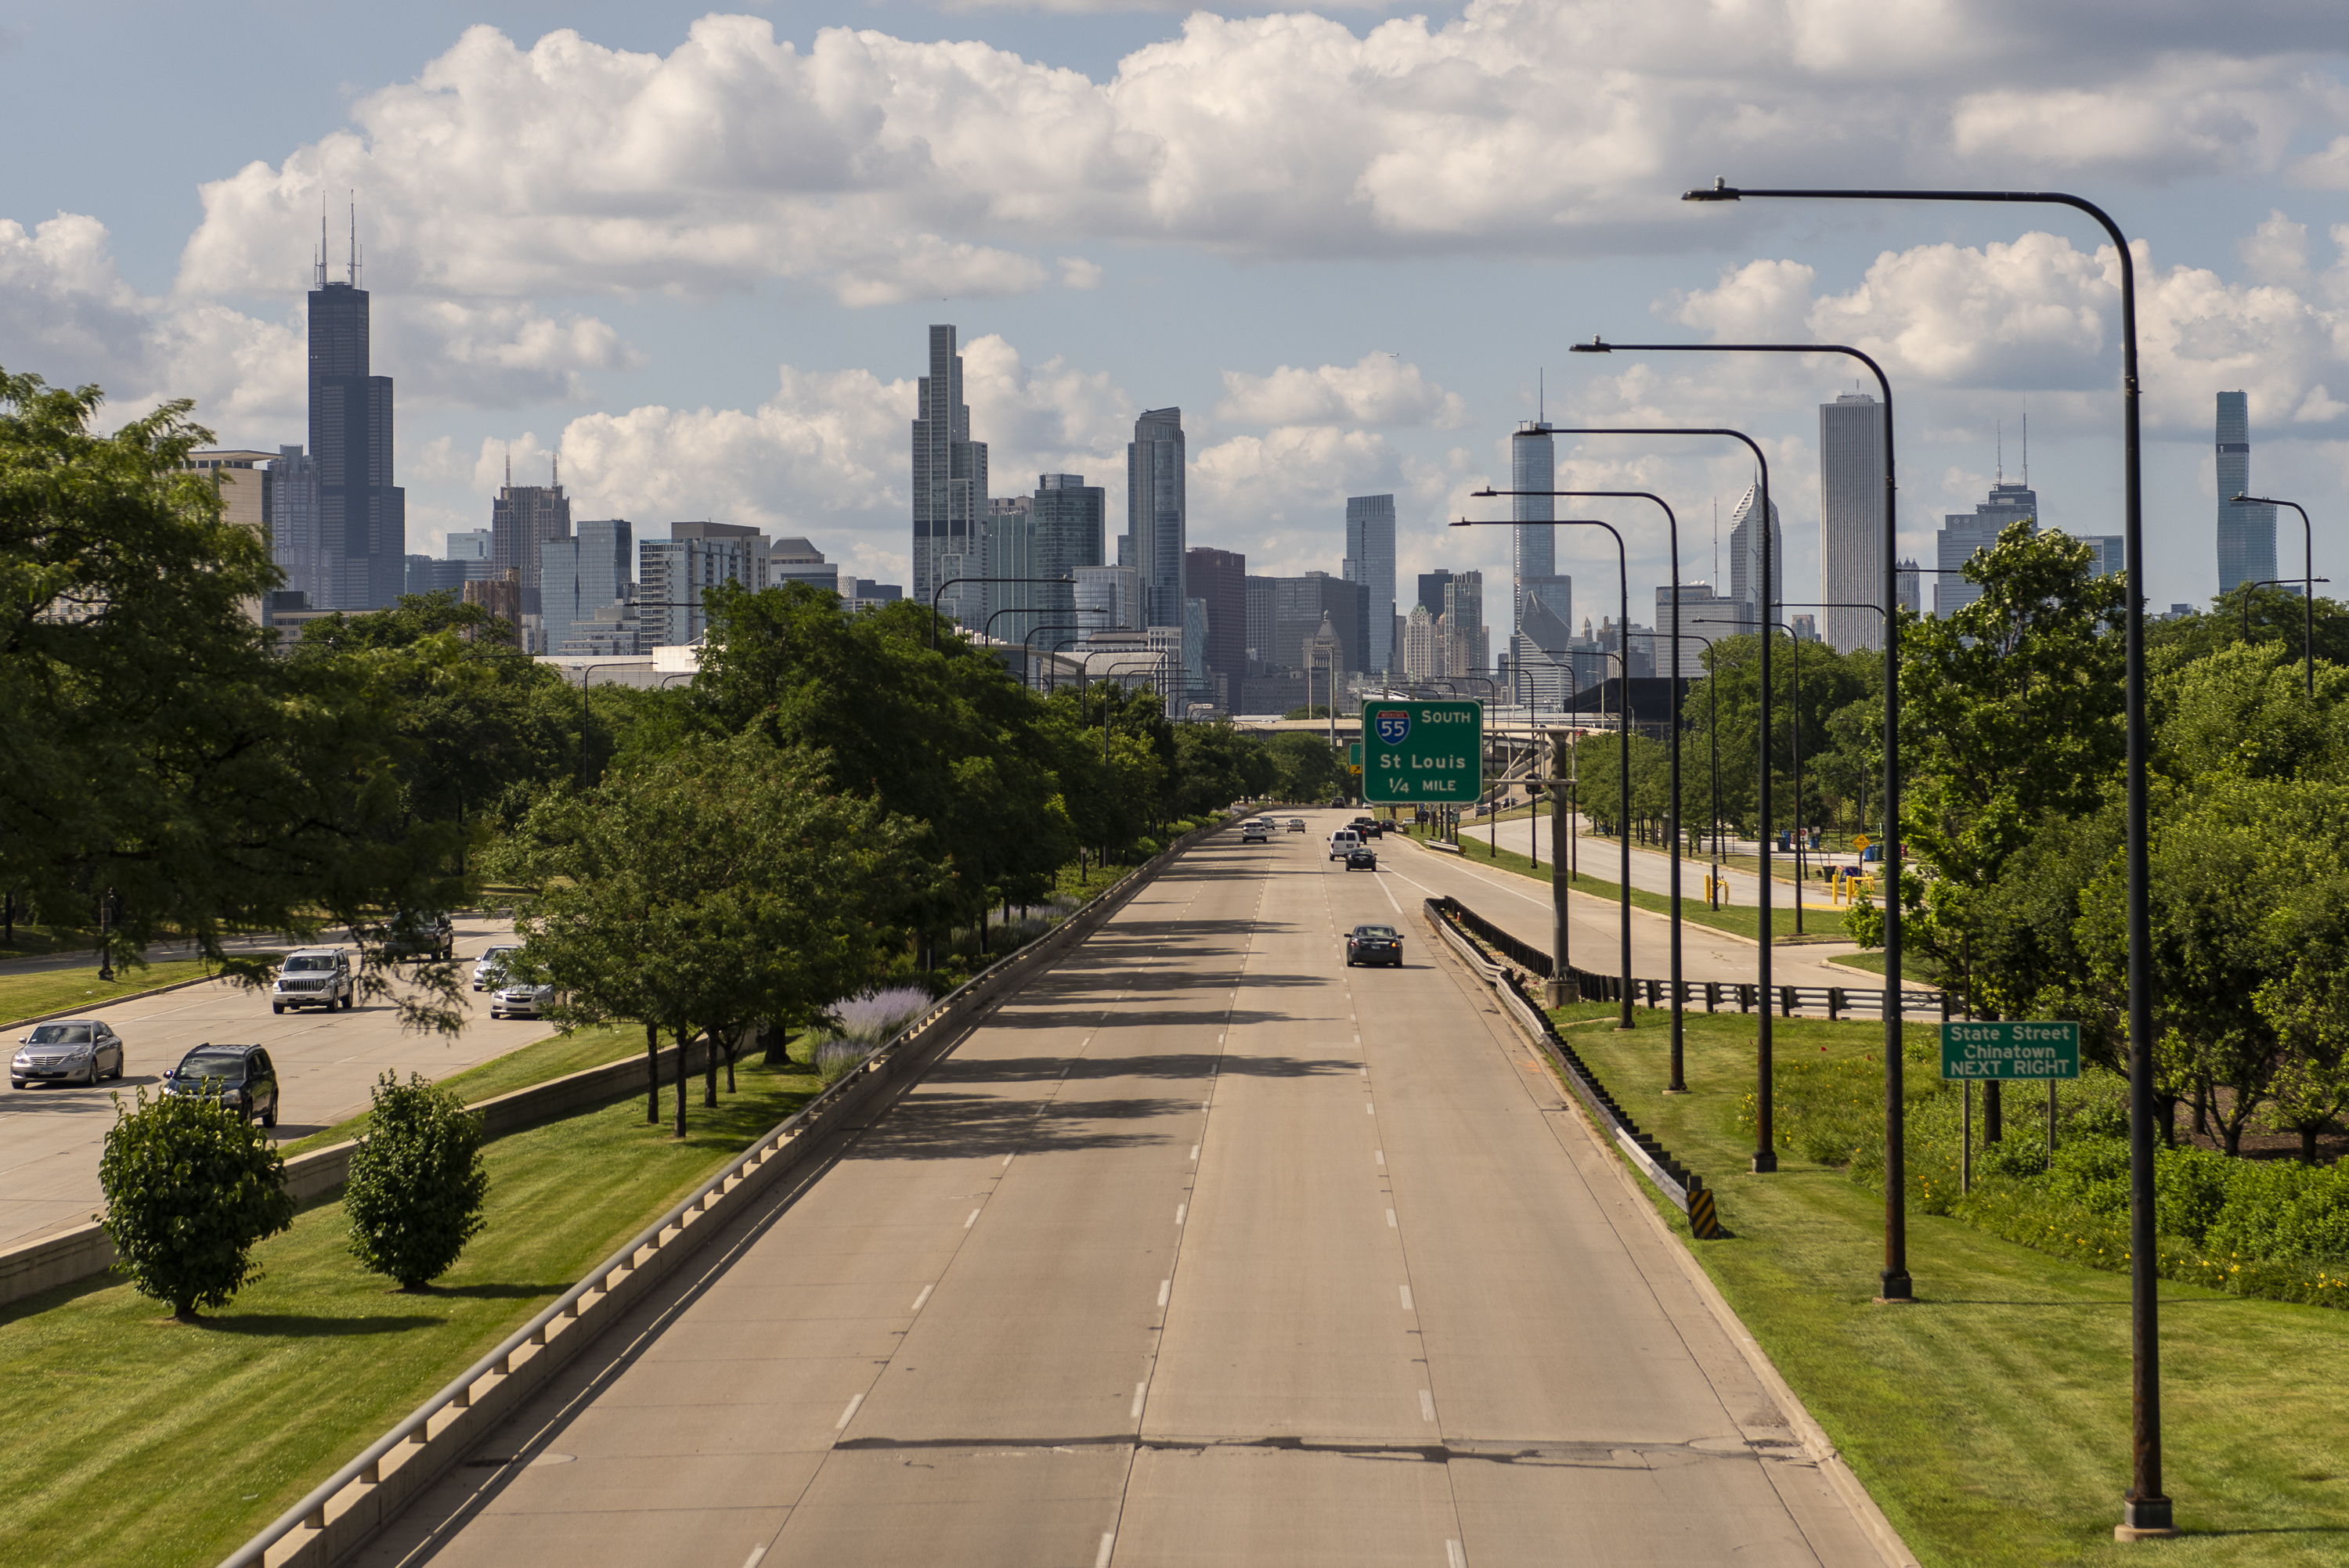 Chicago skyline, seen from 31st Street Bridge over Lake Shore Drive in July.